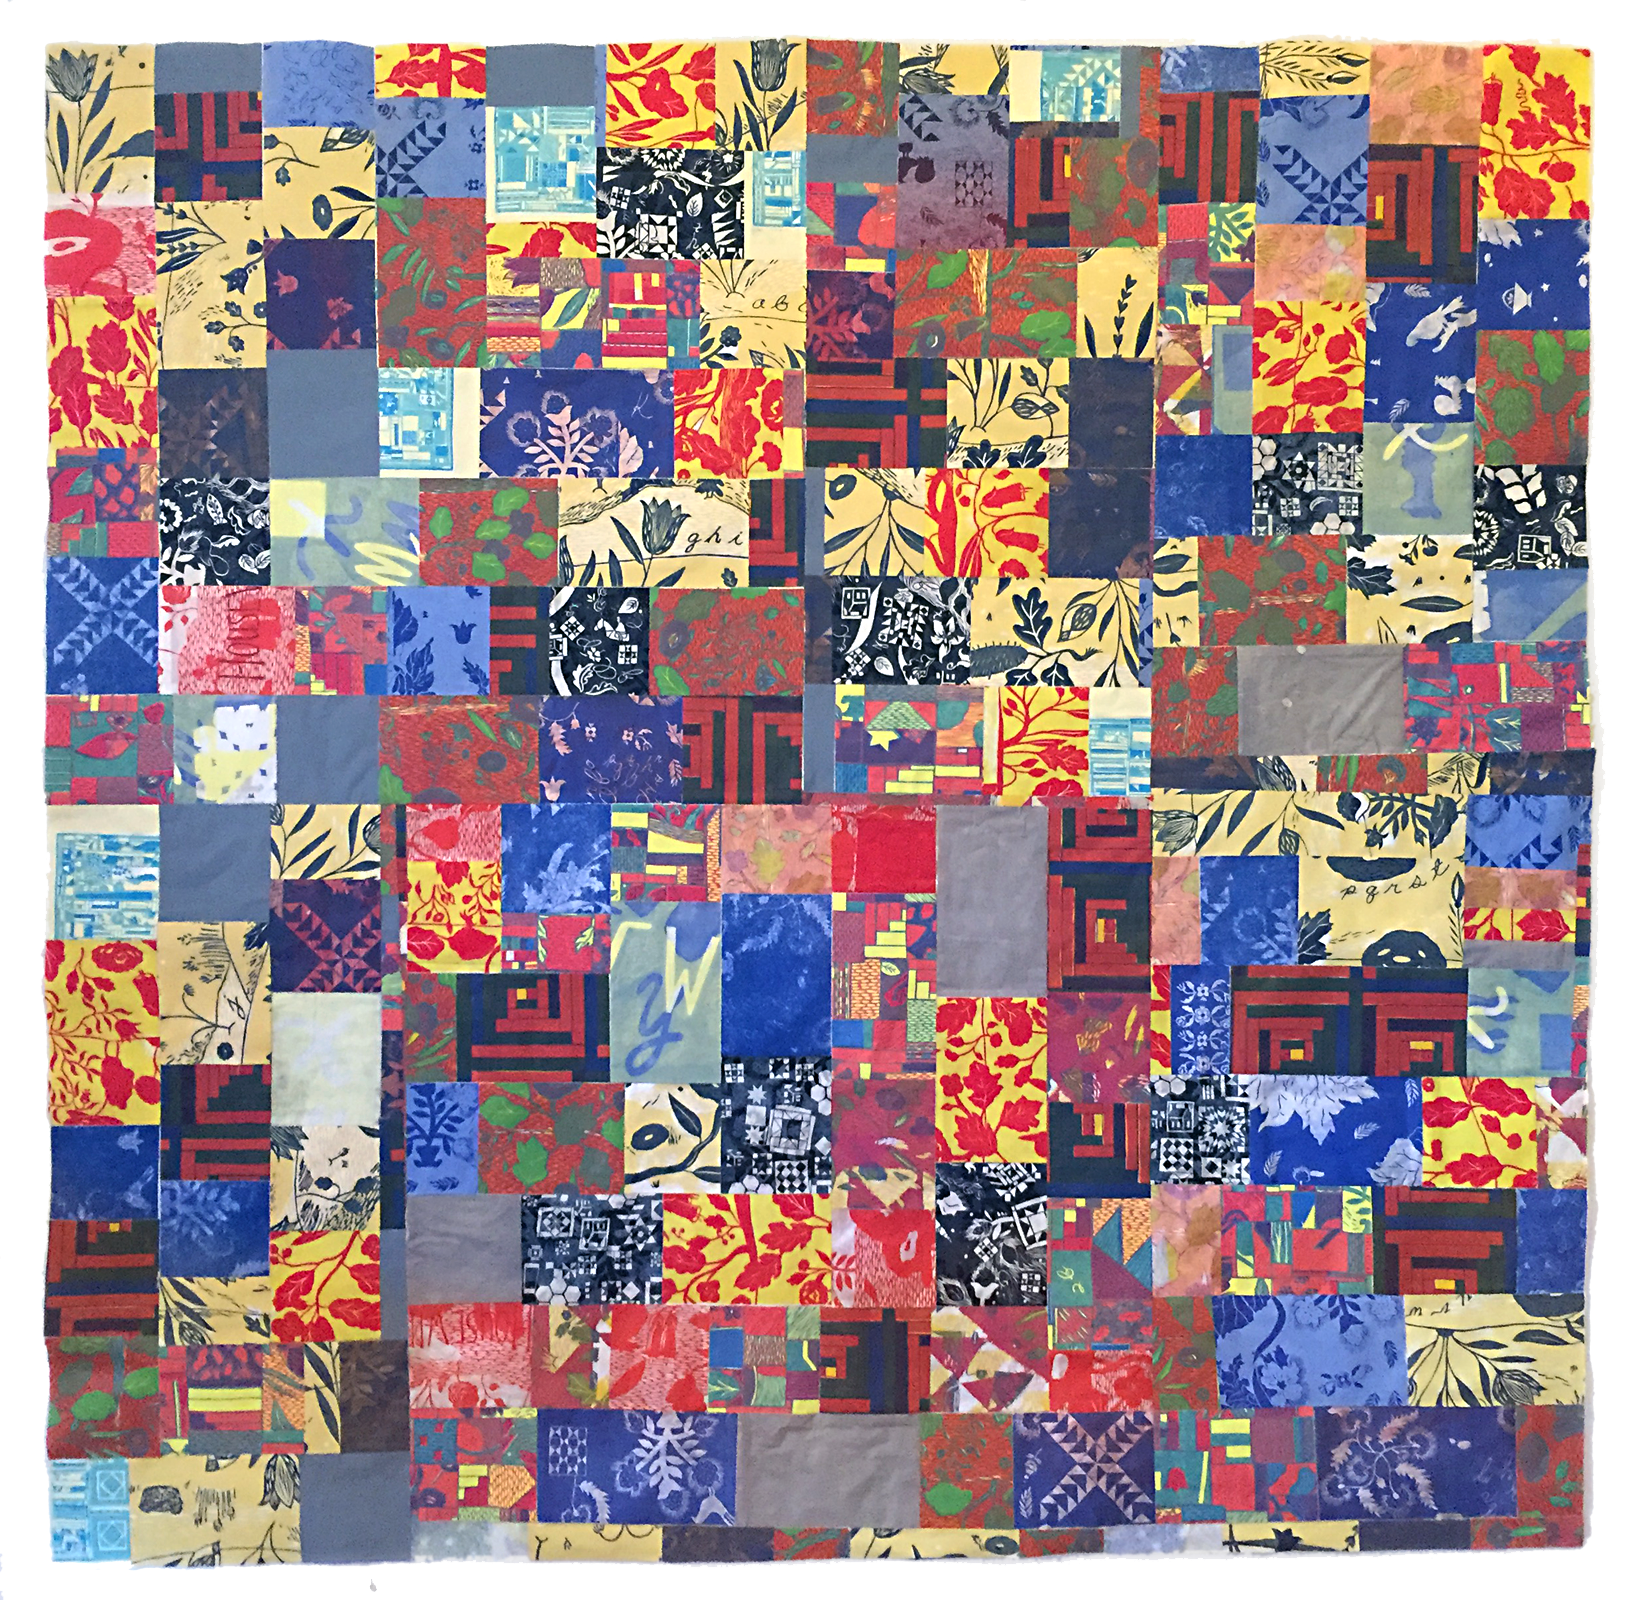 Katy G Collier,  Not superimposed, not fiction , Paper quilt, woodcut, monotype, and collage, 2018